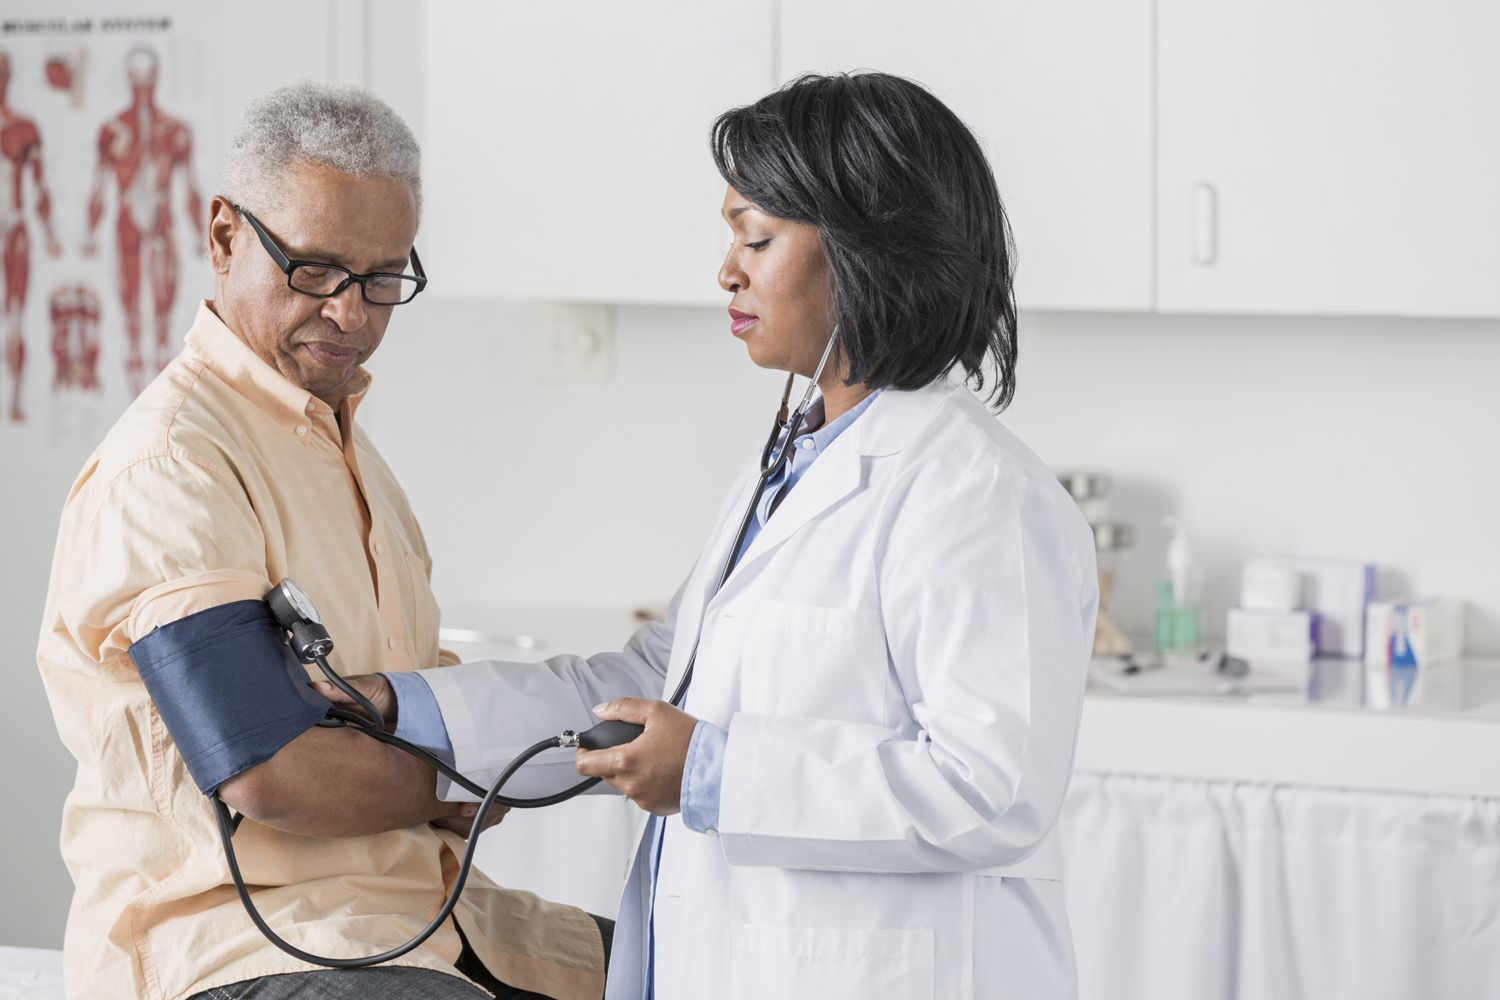 doctor checking senior man's blood pressure in a medical office